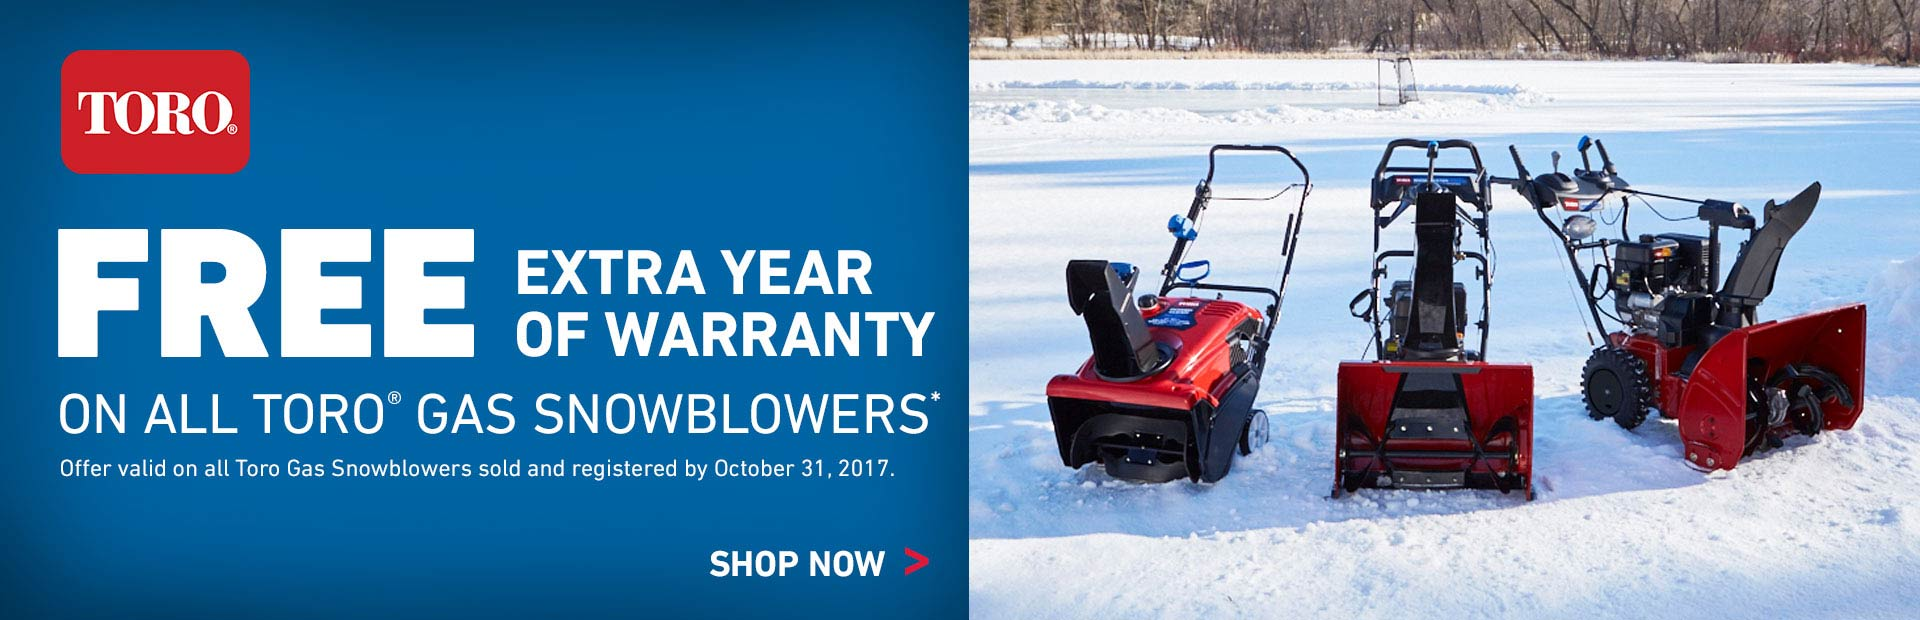 FREE Extra Year of Warranty